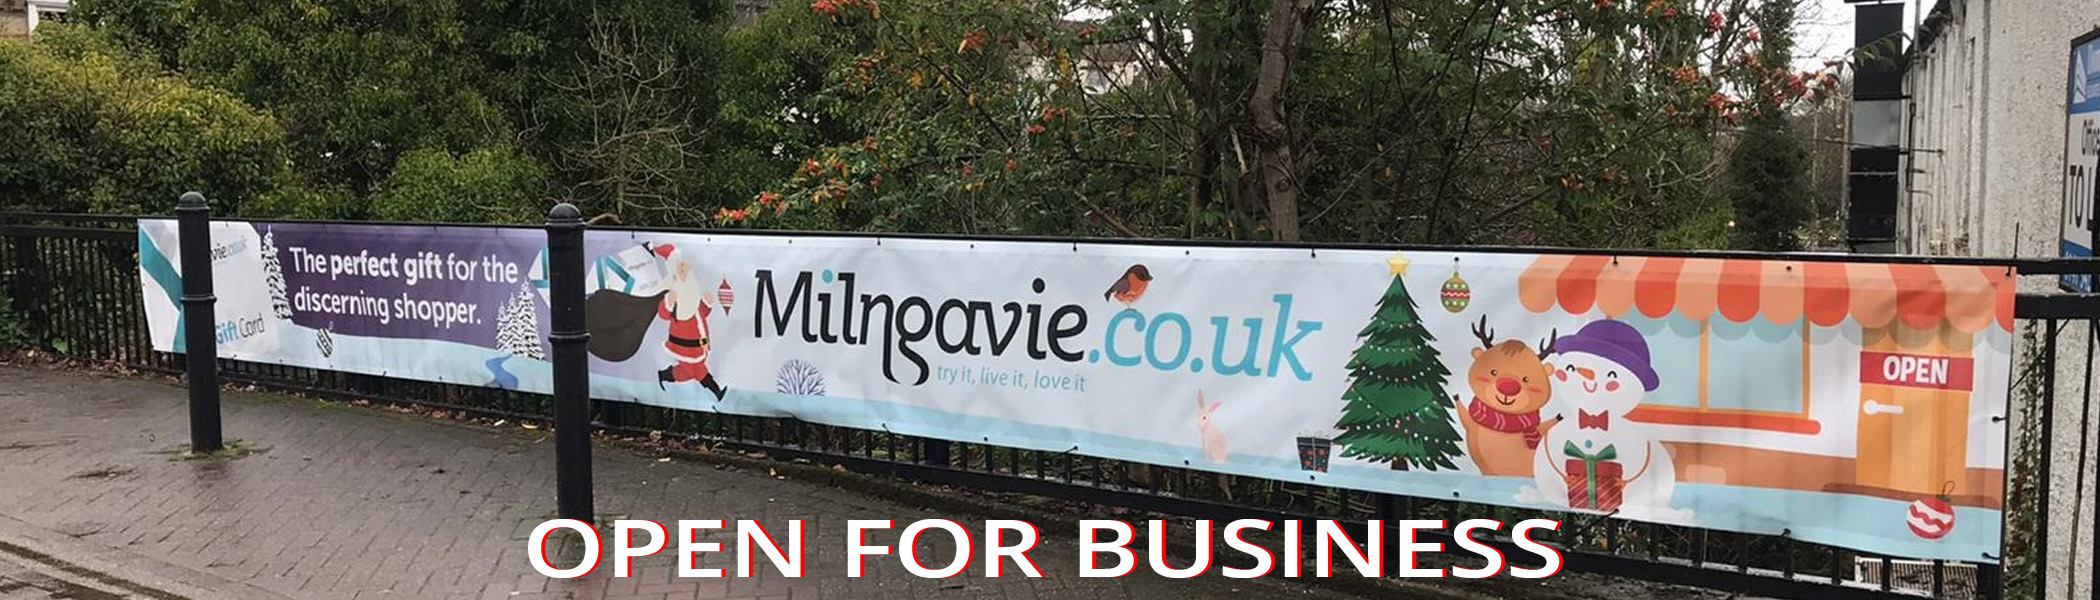 Milngavie open safely for business